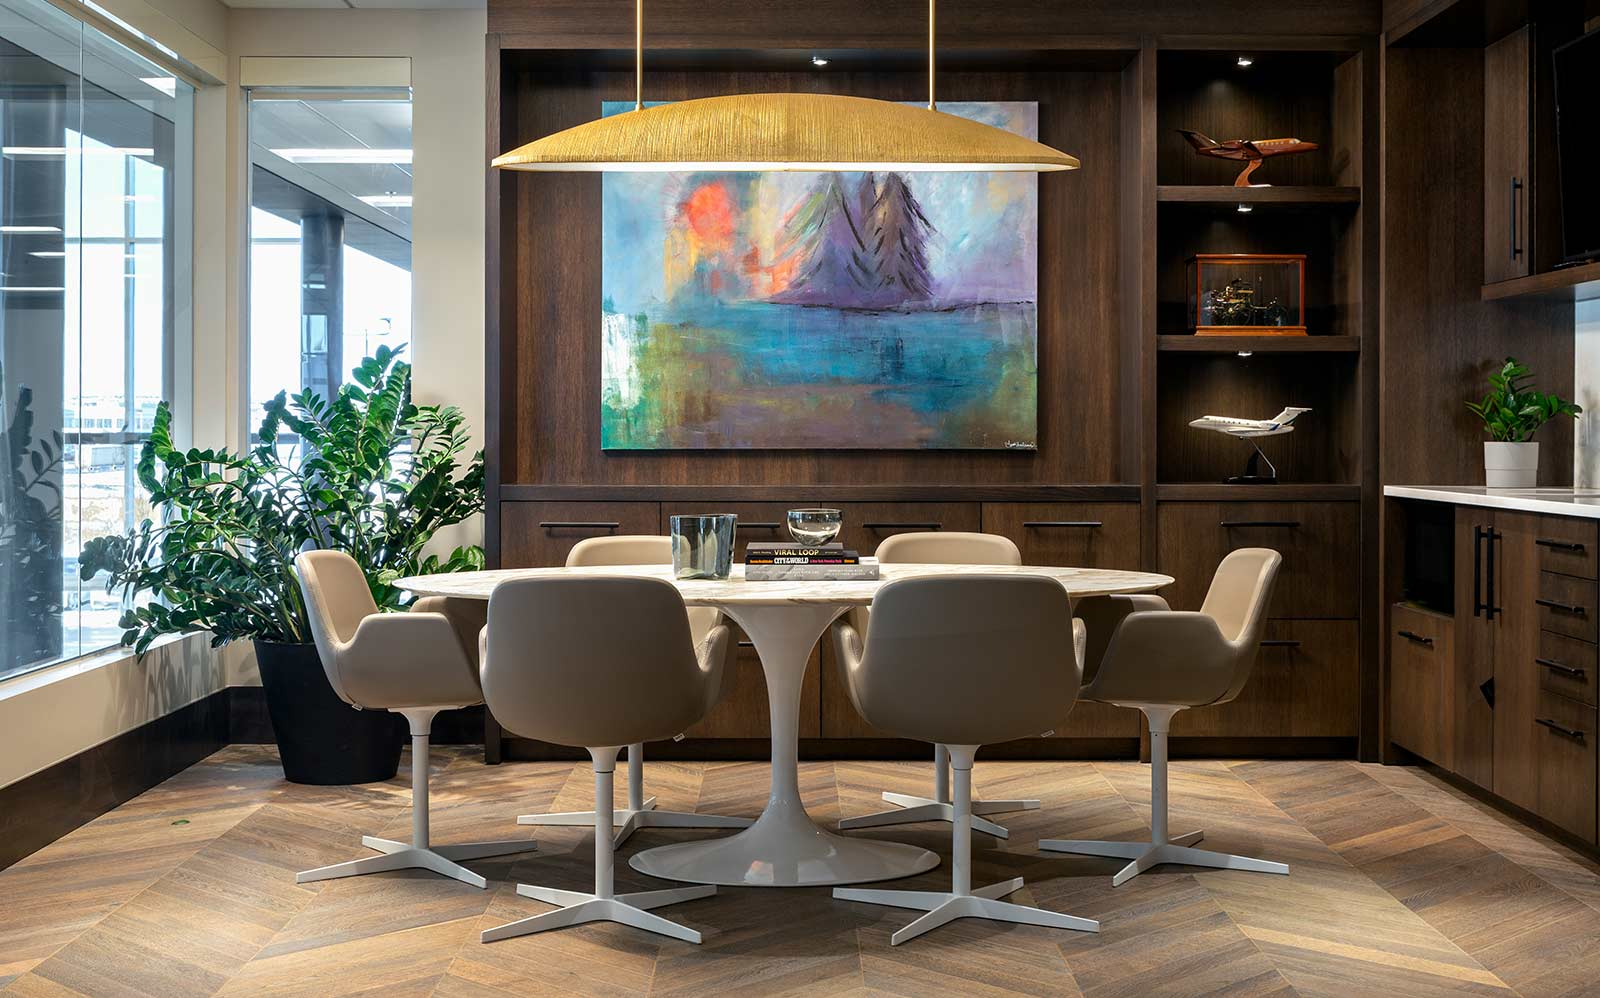 Country Hills Mercedes Dealership   Calgary Commercial Interior Design